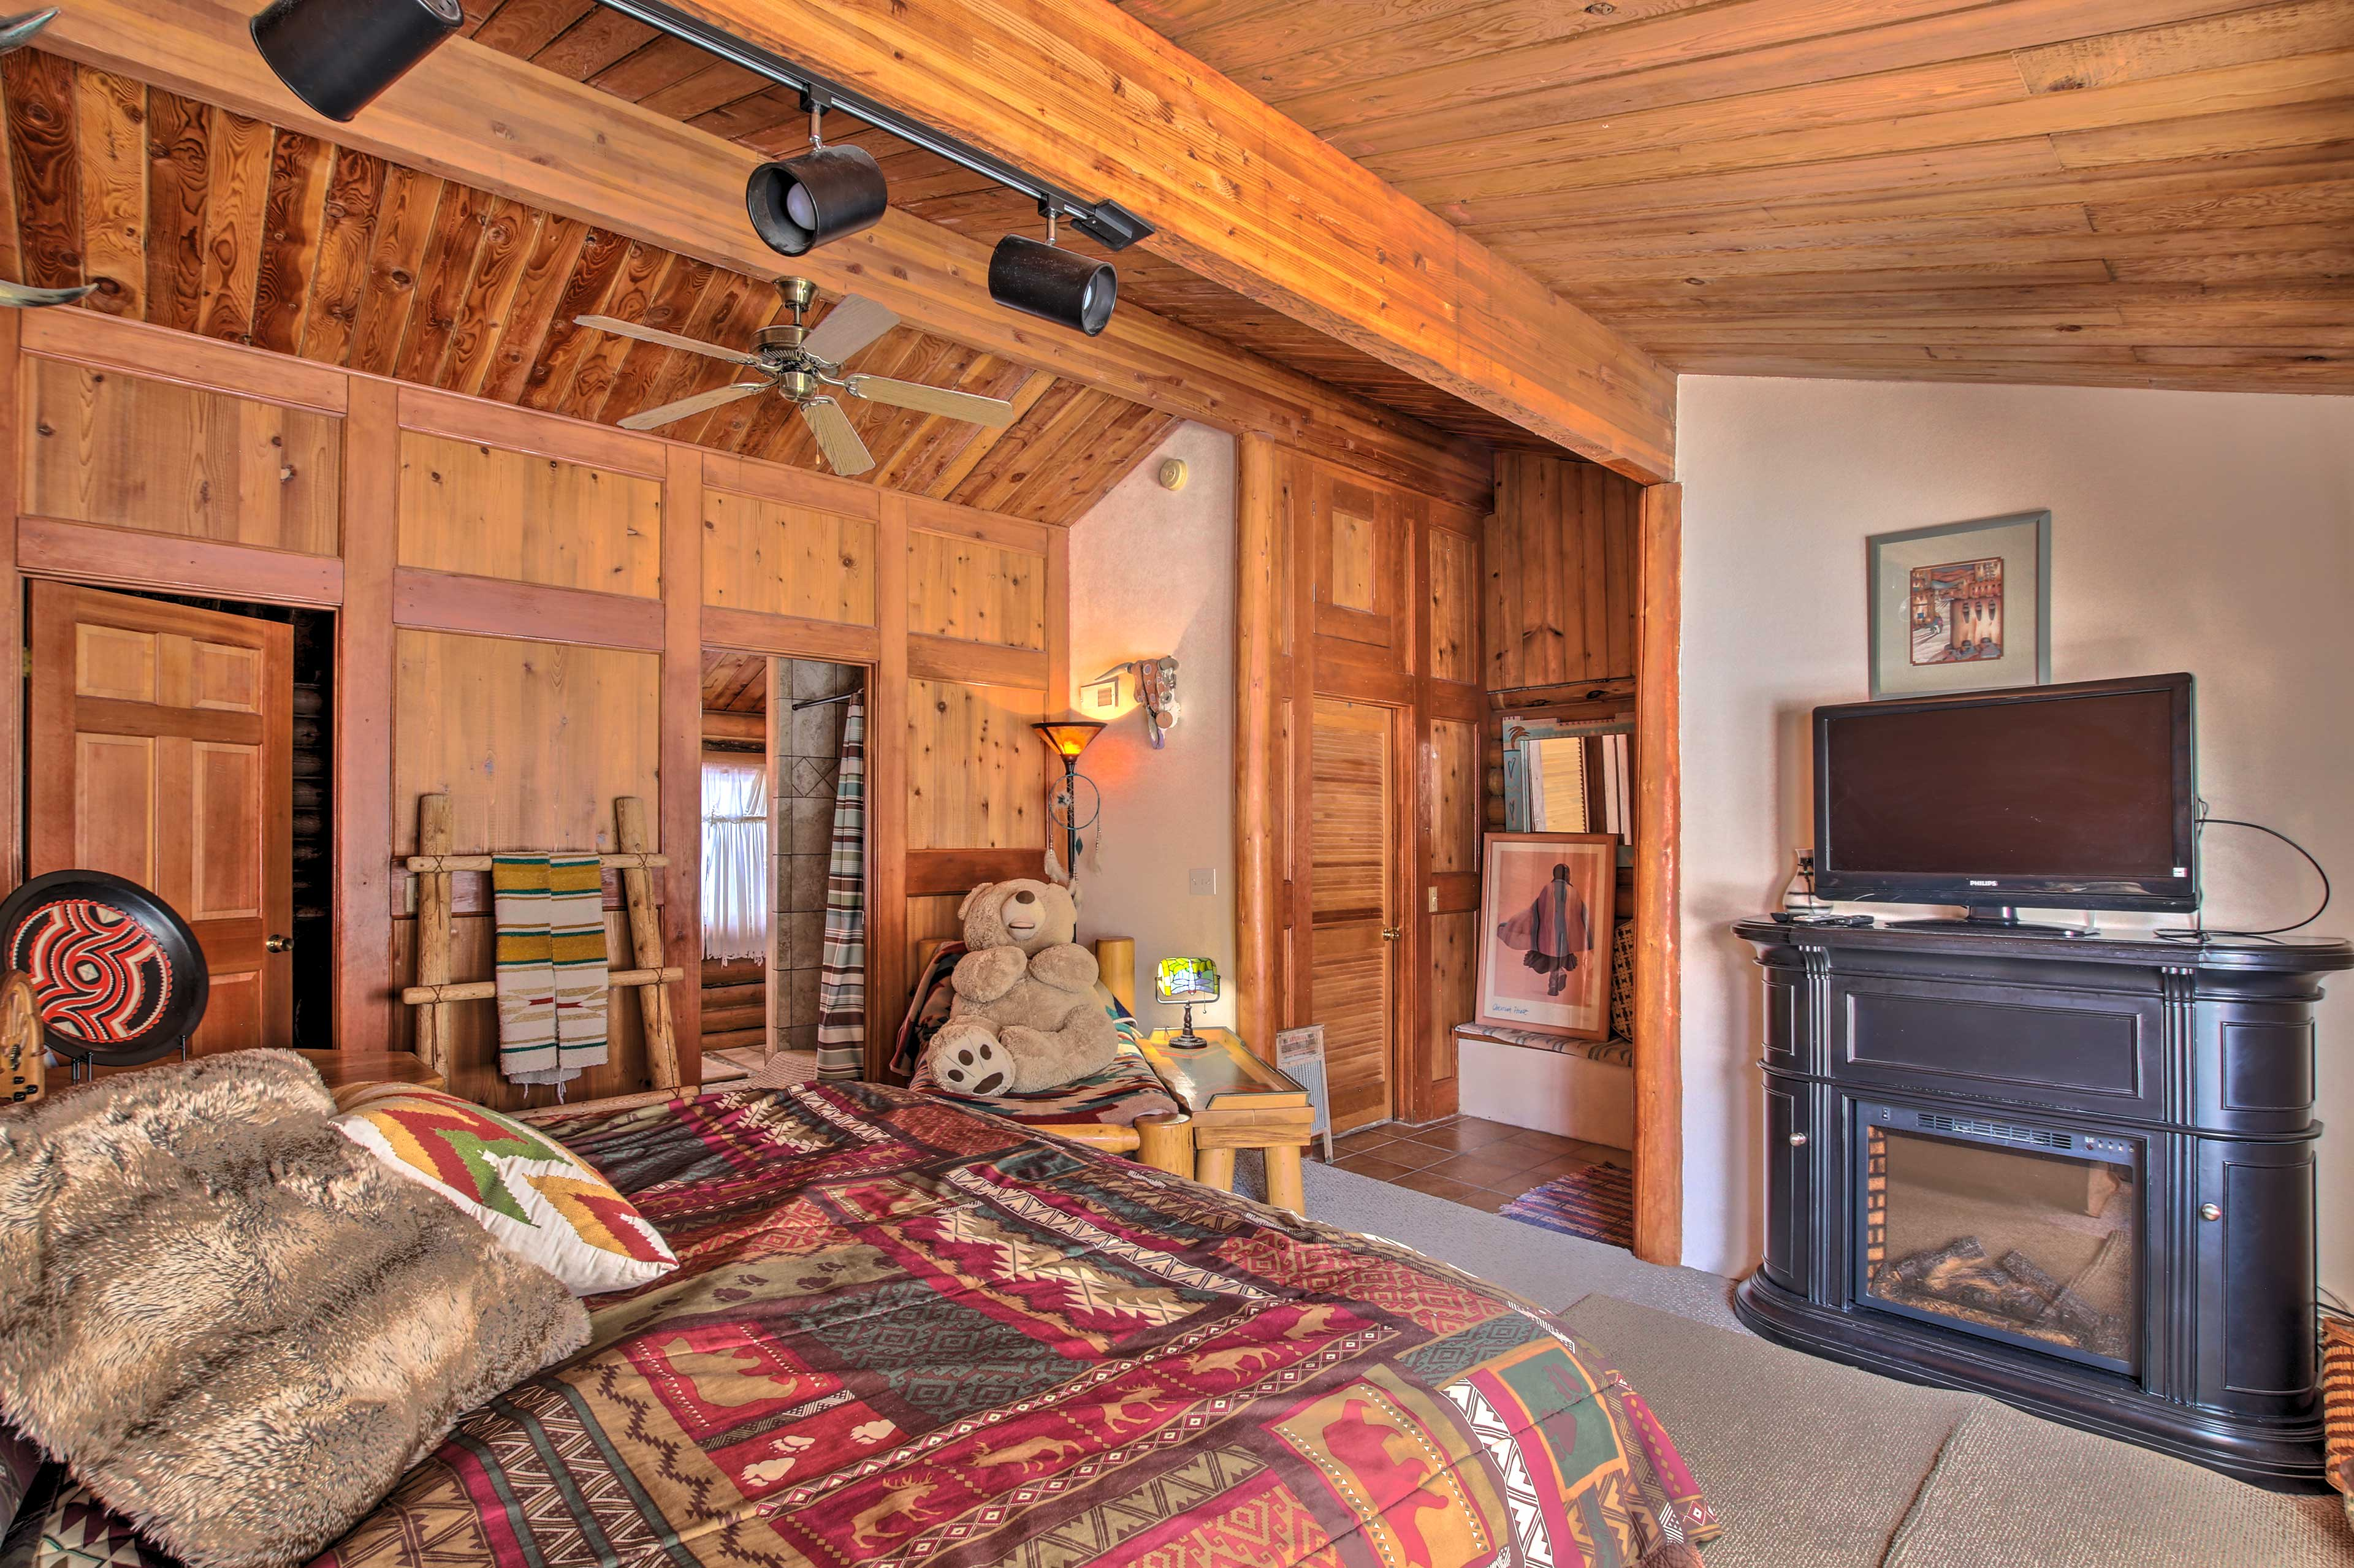 Turn on the fireplace and watch a show on the flat-screen TV.